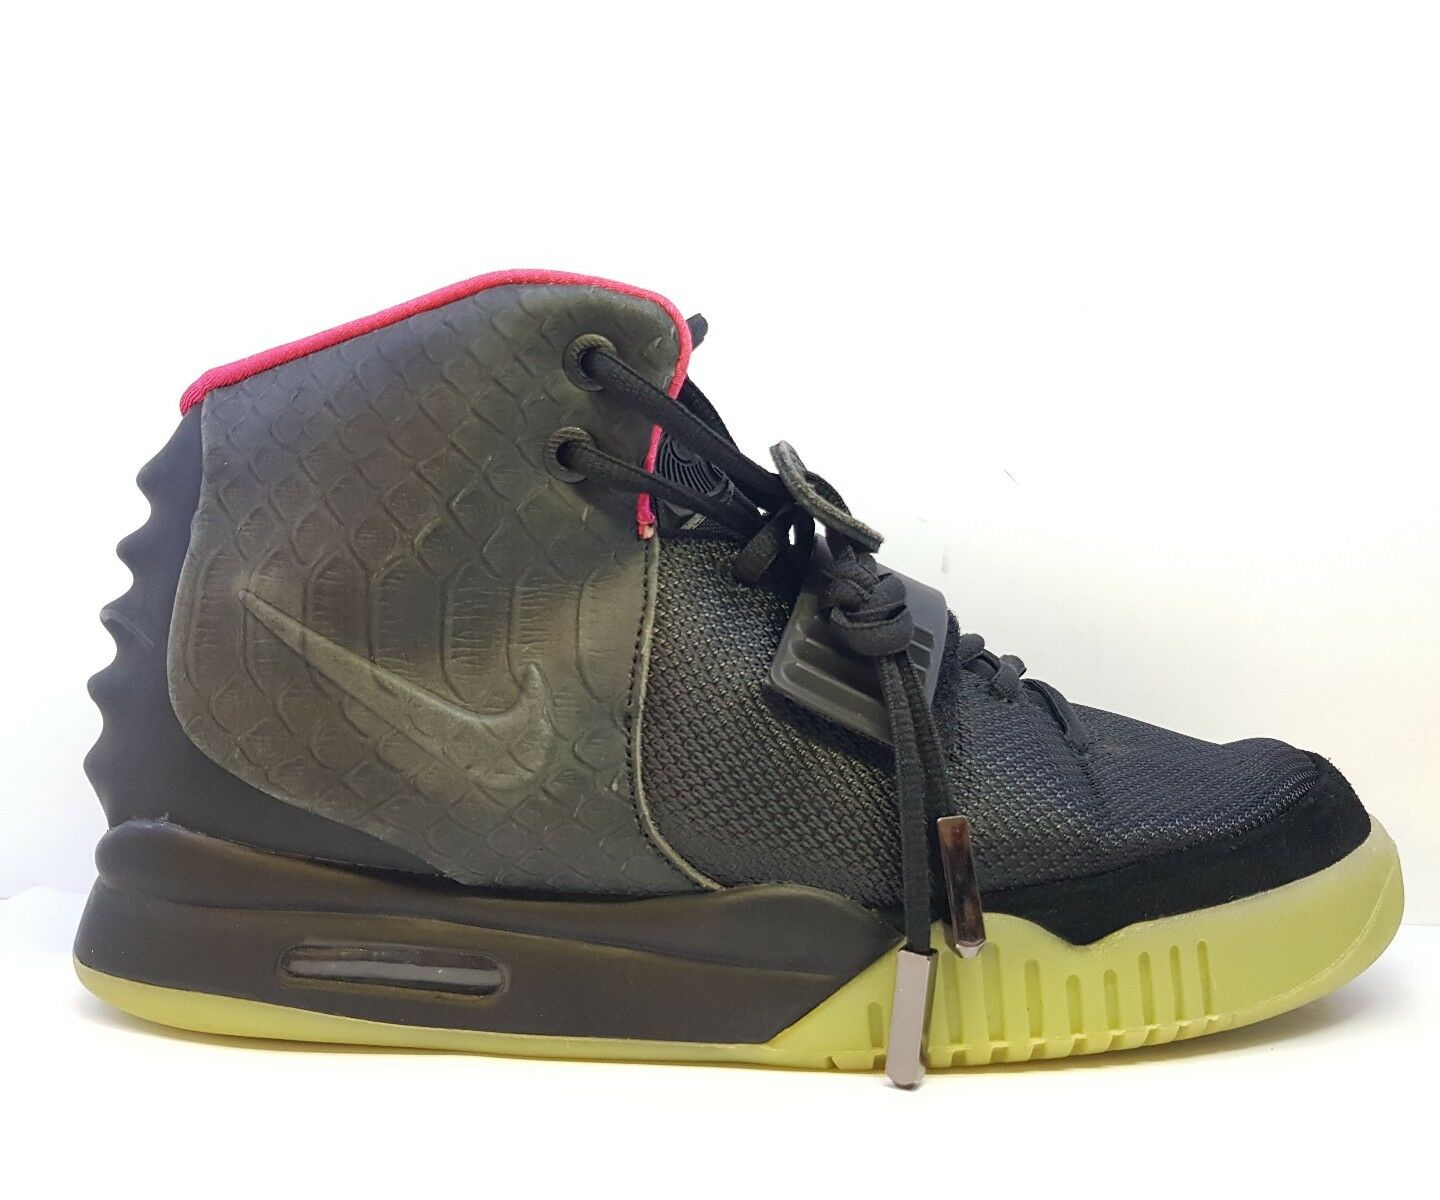 NIKE AIR YEEZY 2 NRG SIZE  HI TOP   508214 006